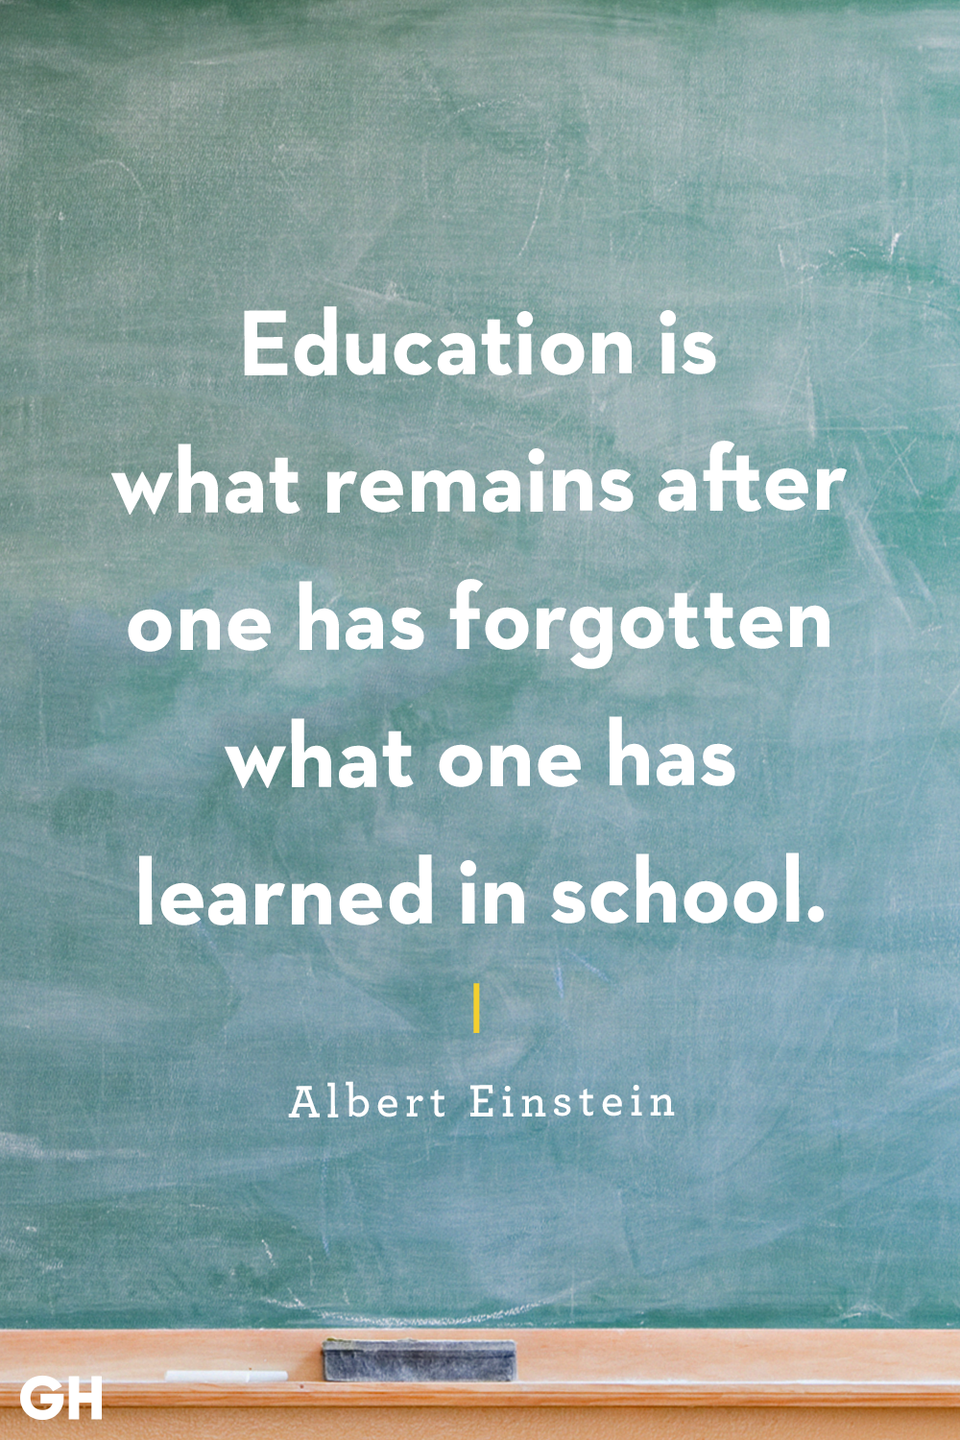 <p>Education is what remains after one has forgotten what one has learned in school.</p>